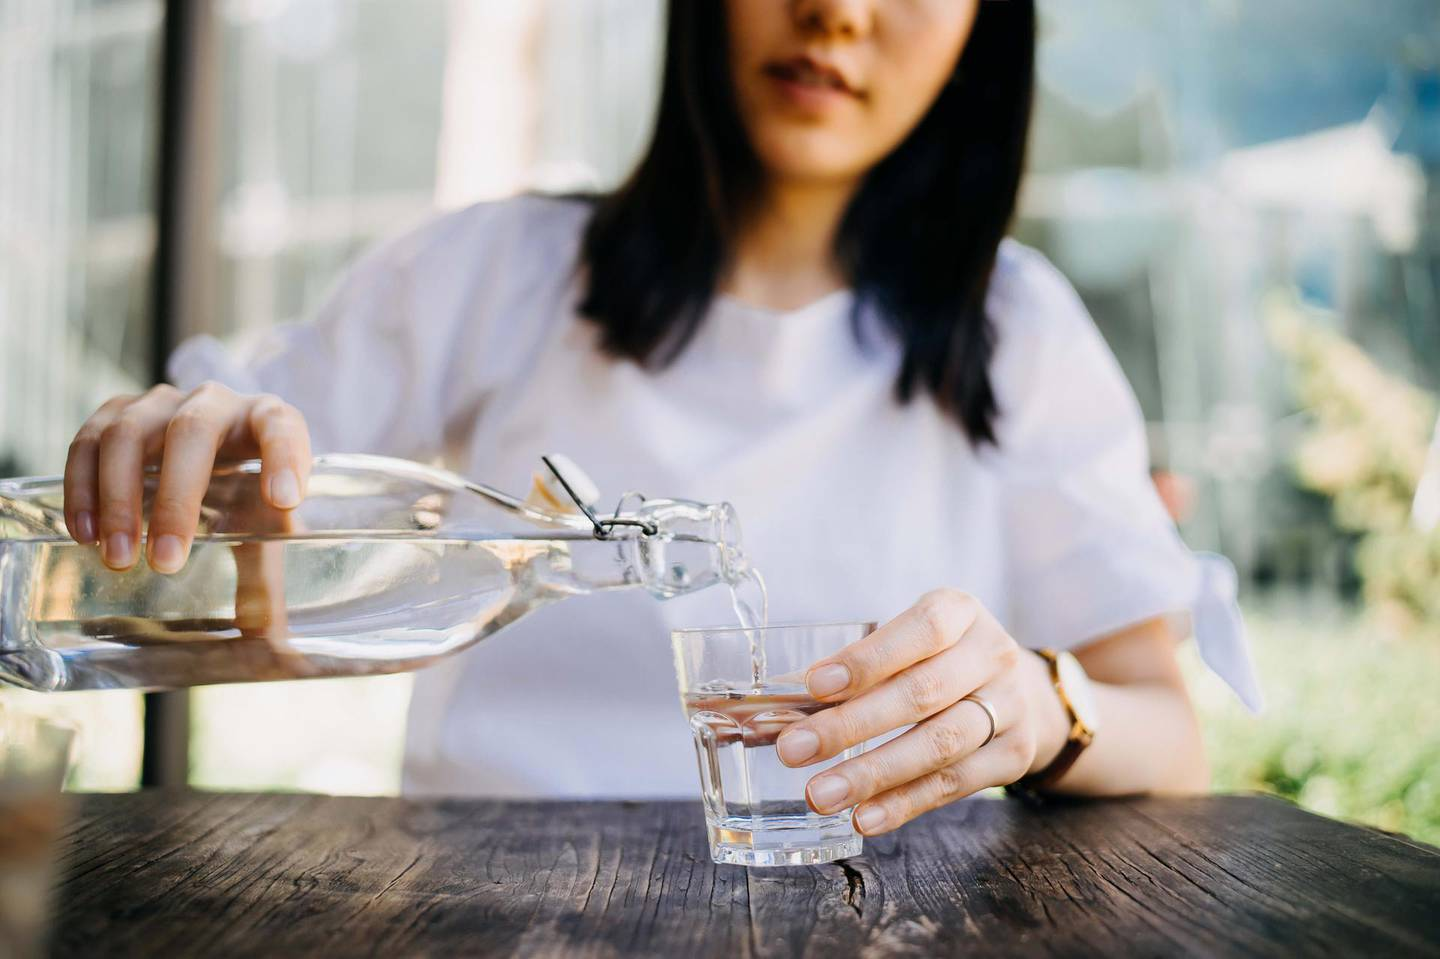 Woman pouring water from bottle into the glass at a outdoor cafe. Getty Images